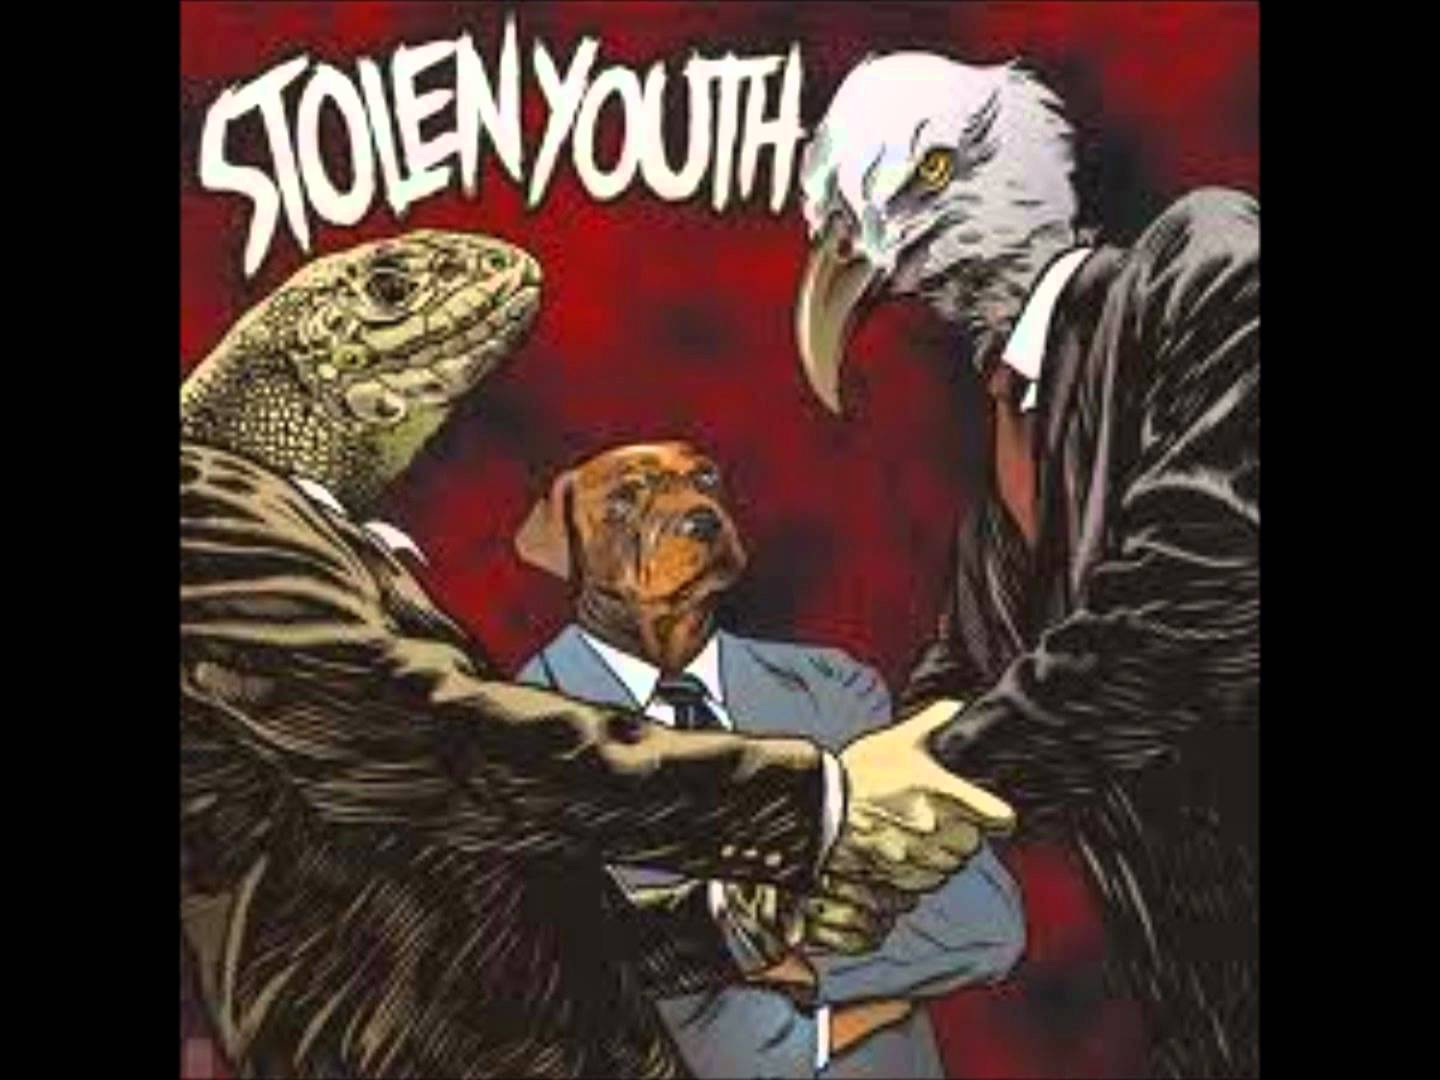 HQ Stolen Youth Wallpapers | File 114.17Kb